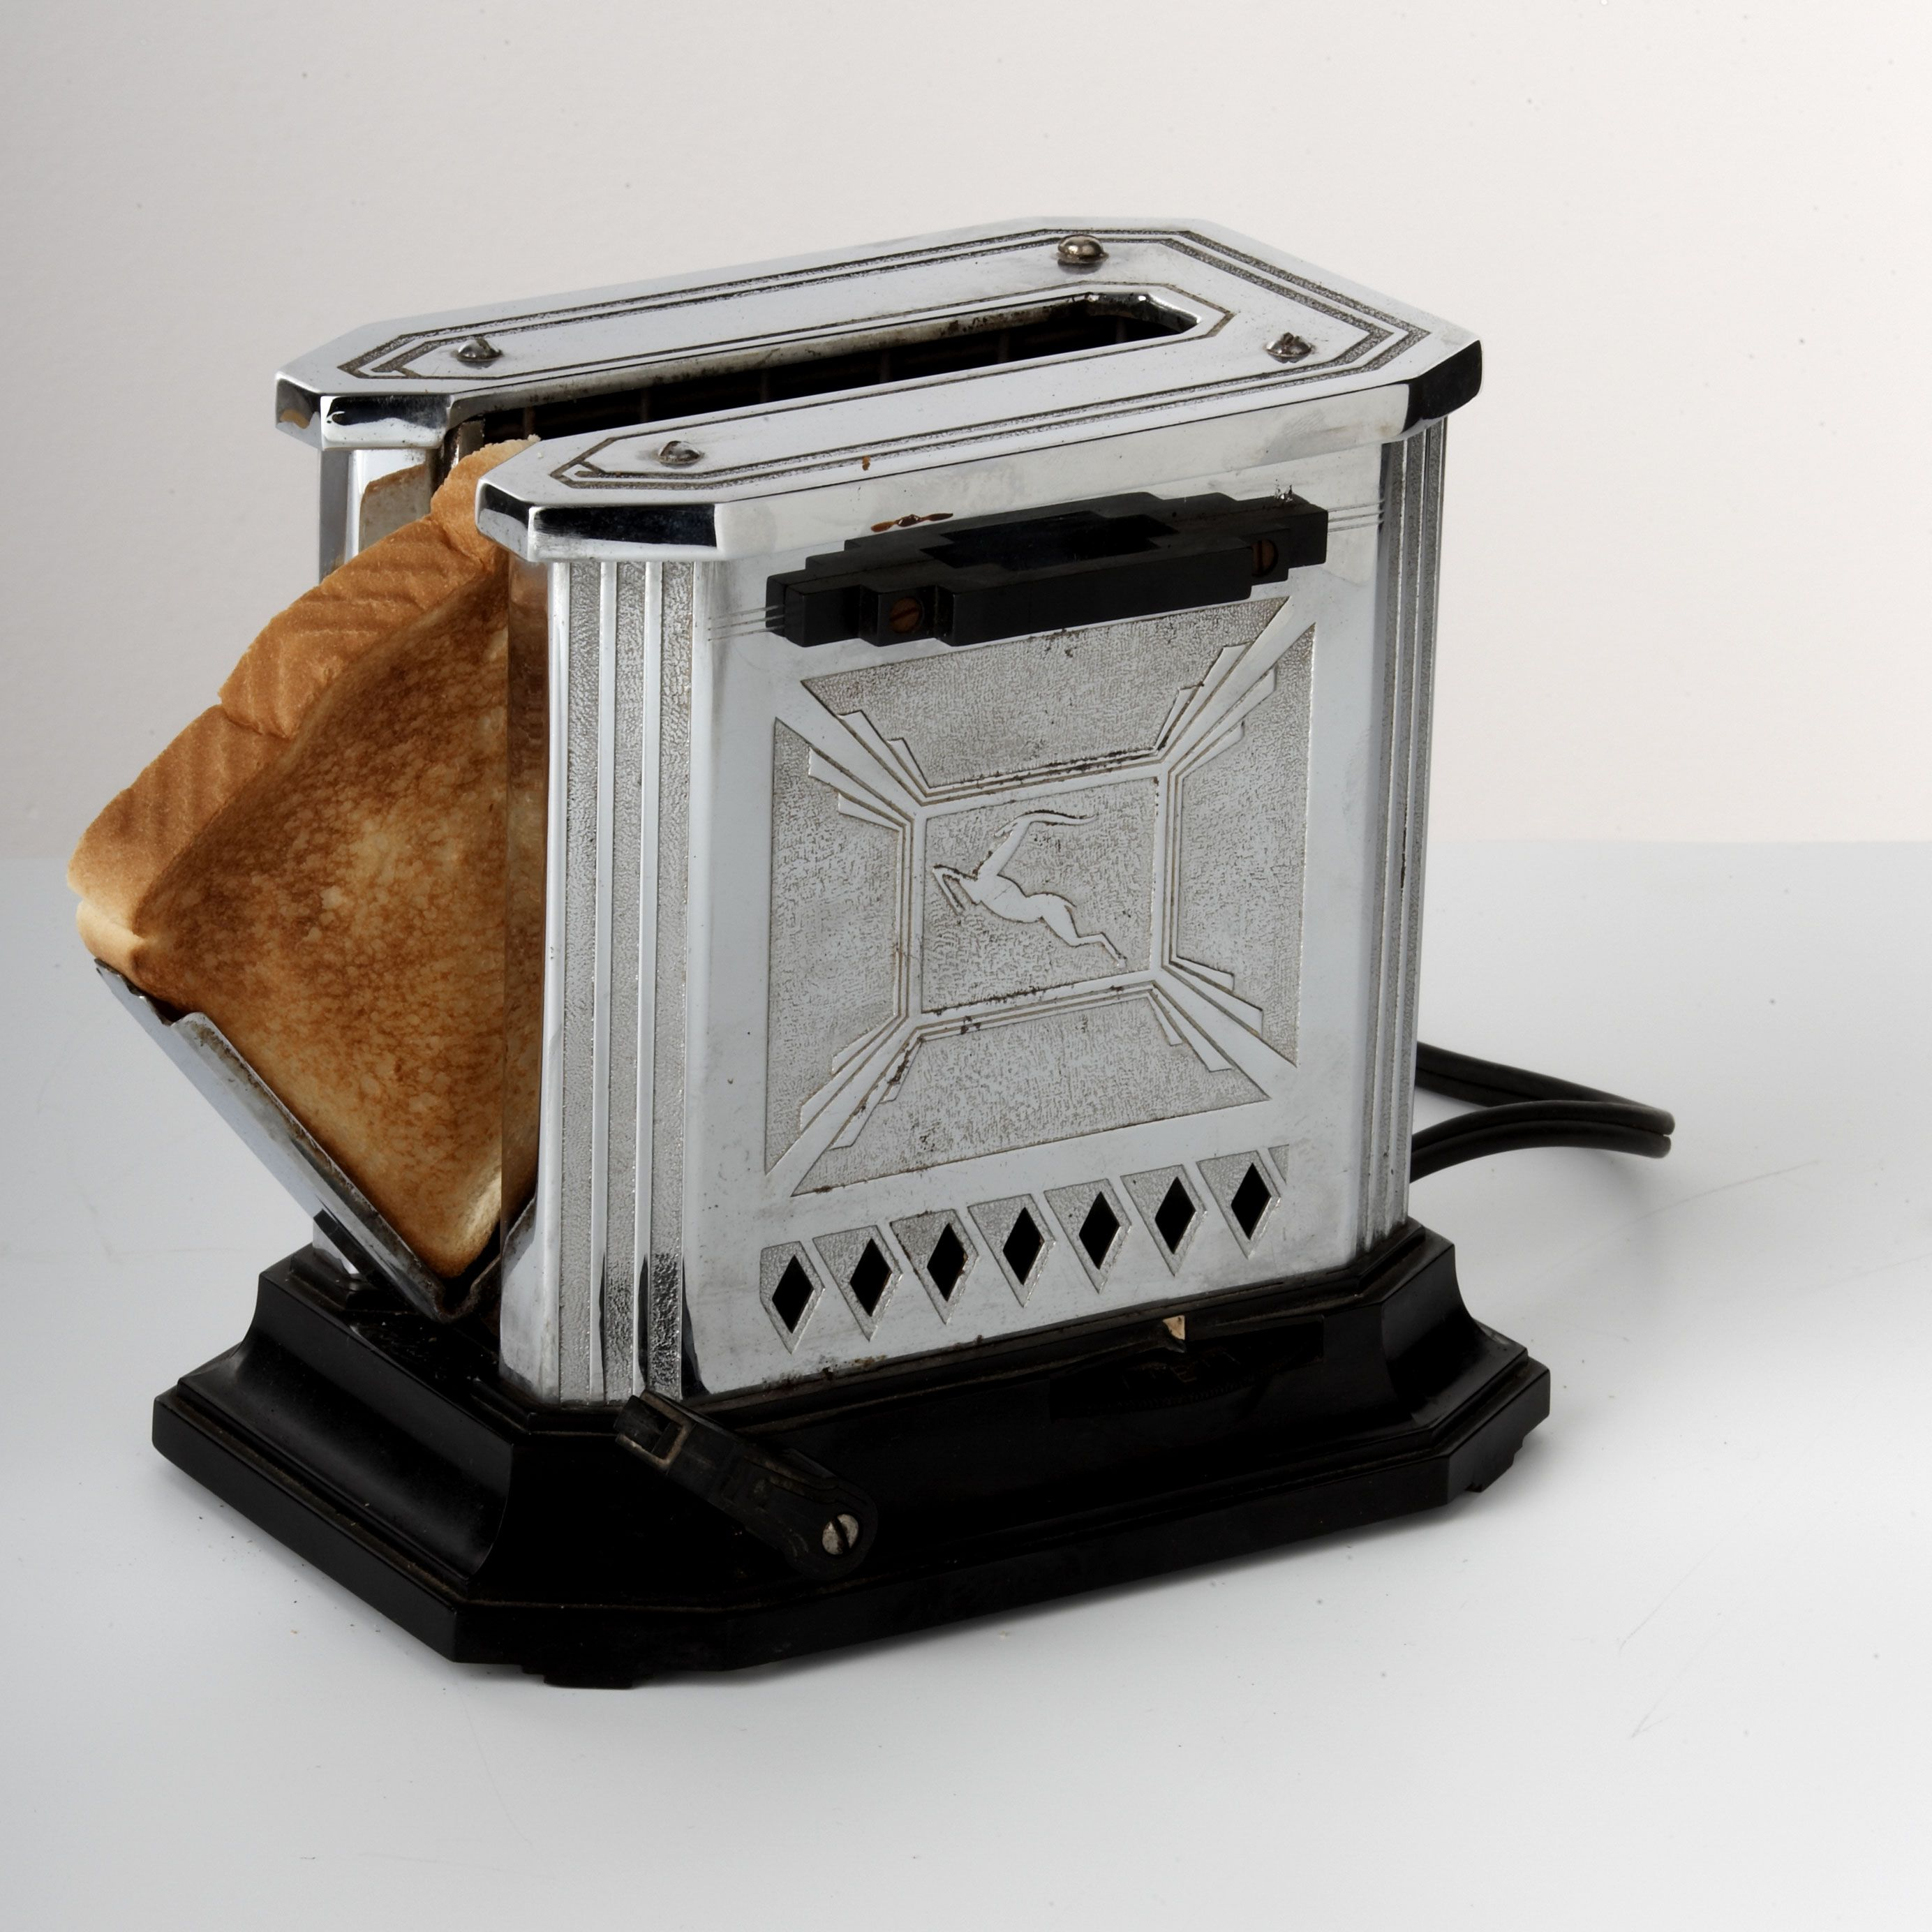 Electric Toasters From 1930 ~ Hotpoint gazelle toaster from s generalelectric